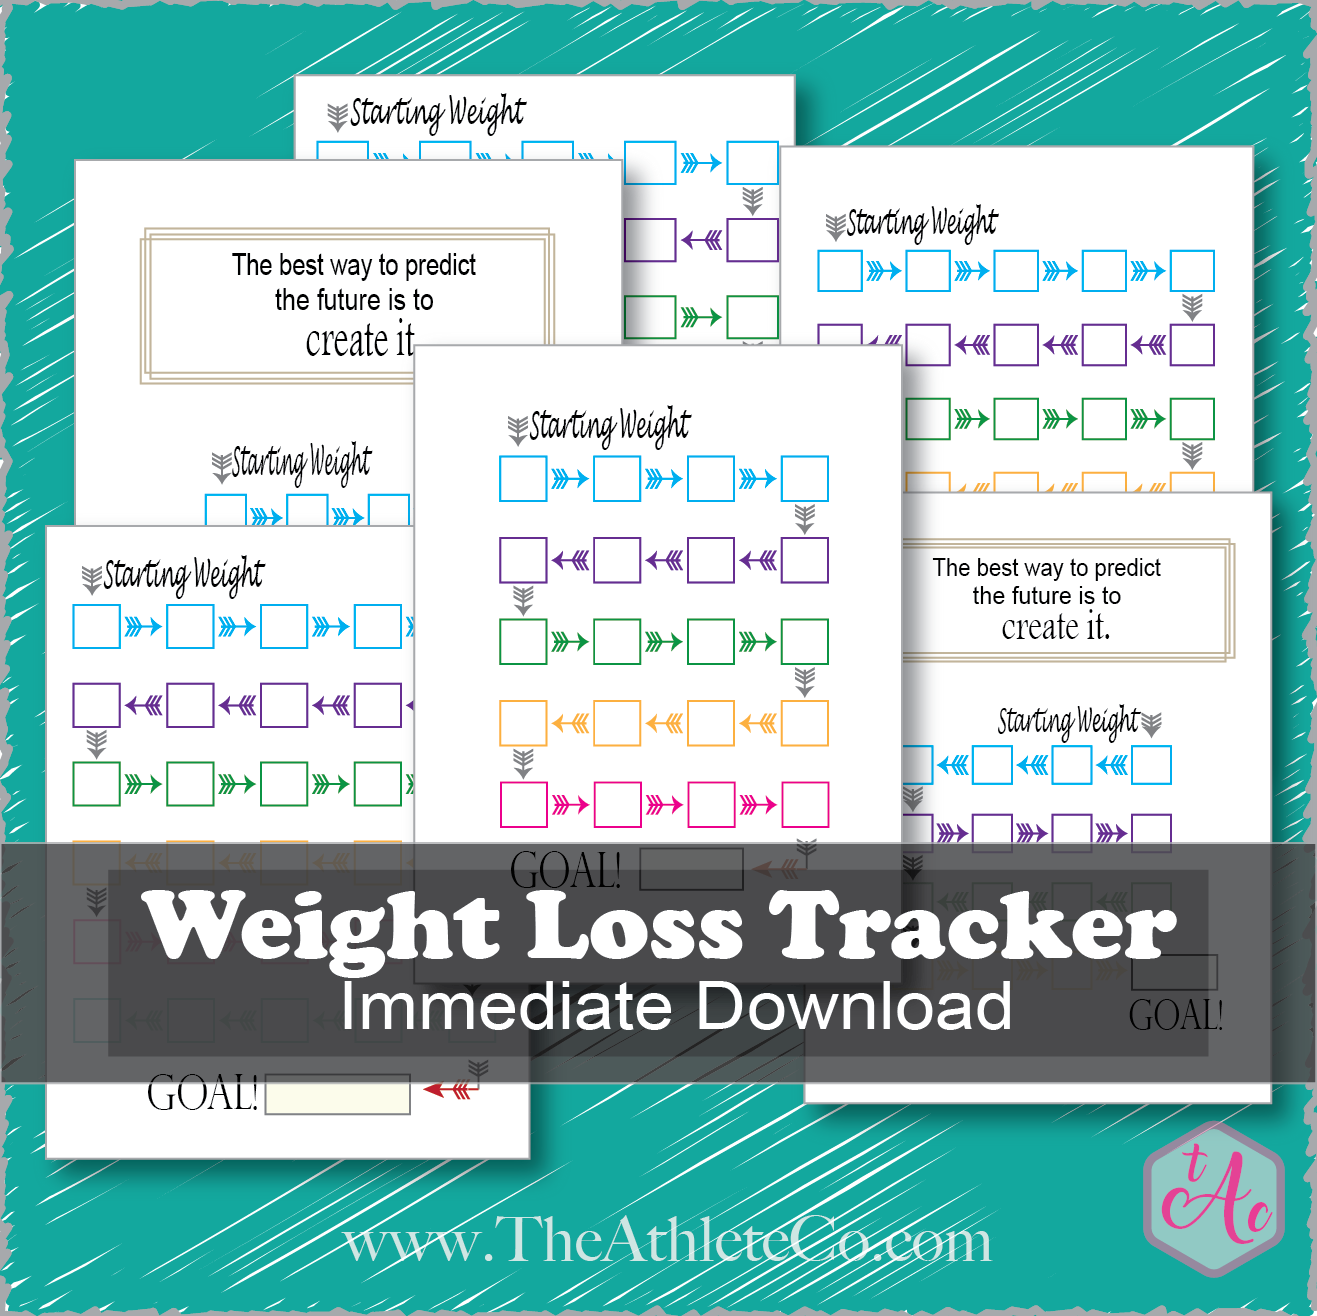 weight loss tracker  u2013 the athlete company